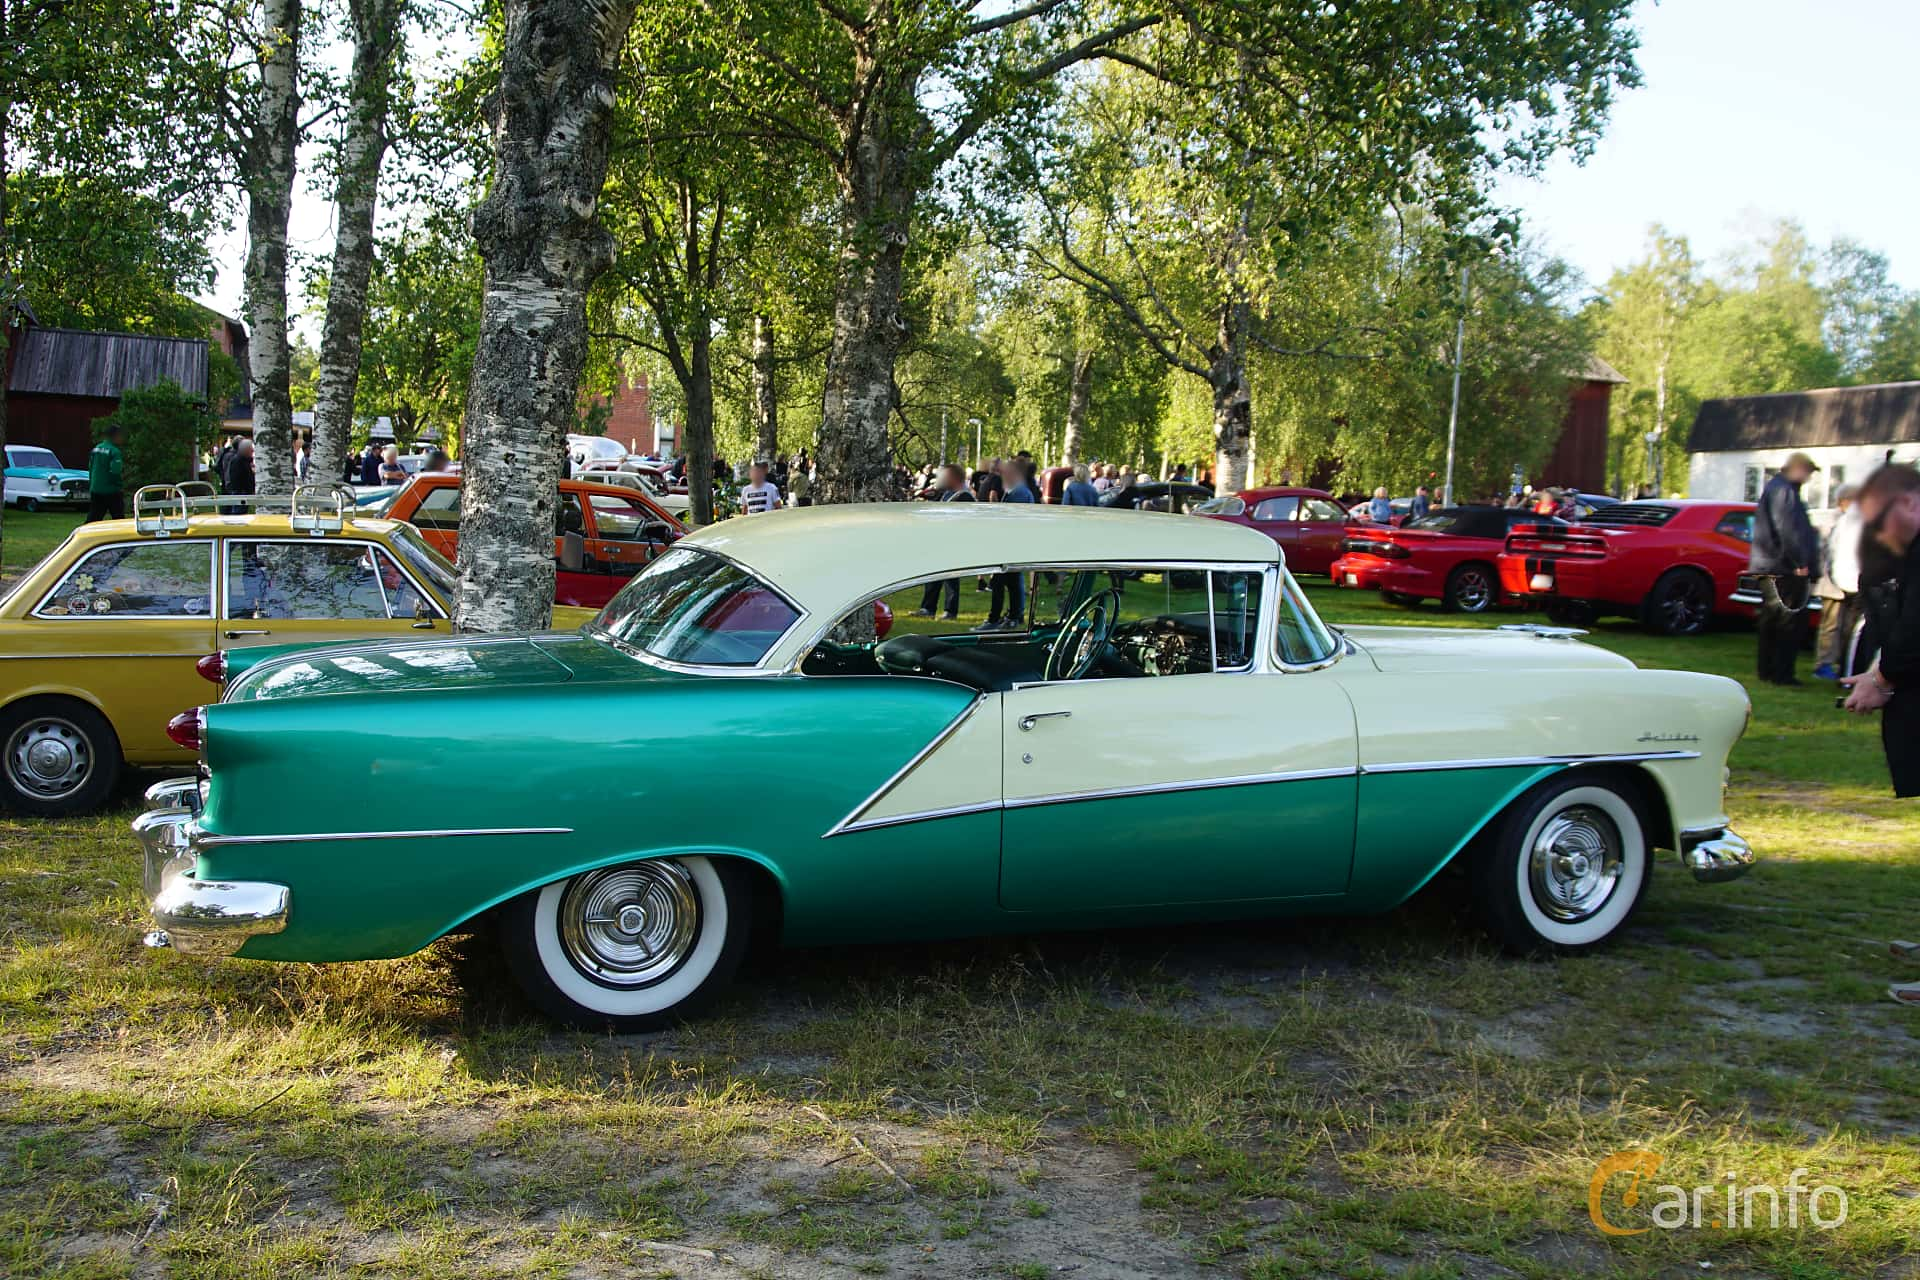 Side  of Oldsmobile Ninety-Eight Holiday Coupé 5.3 V8 Hydra-Matic, 188ps, 1954 at Onsdagsträffar på Gammlia Umeå 2019 vecka 28